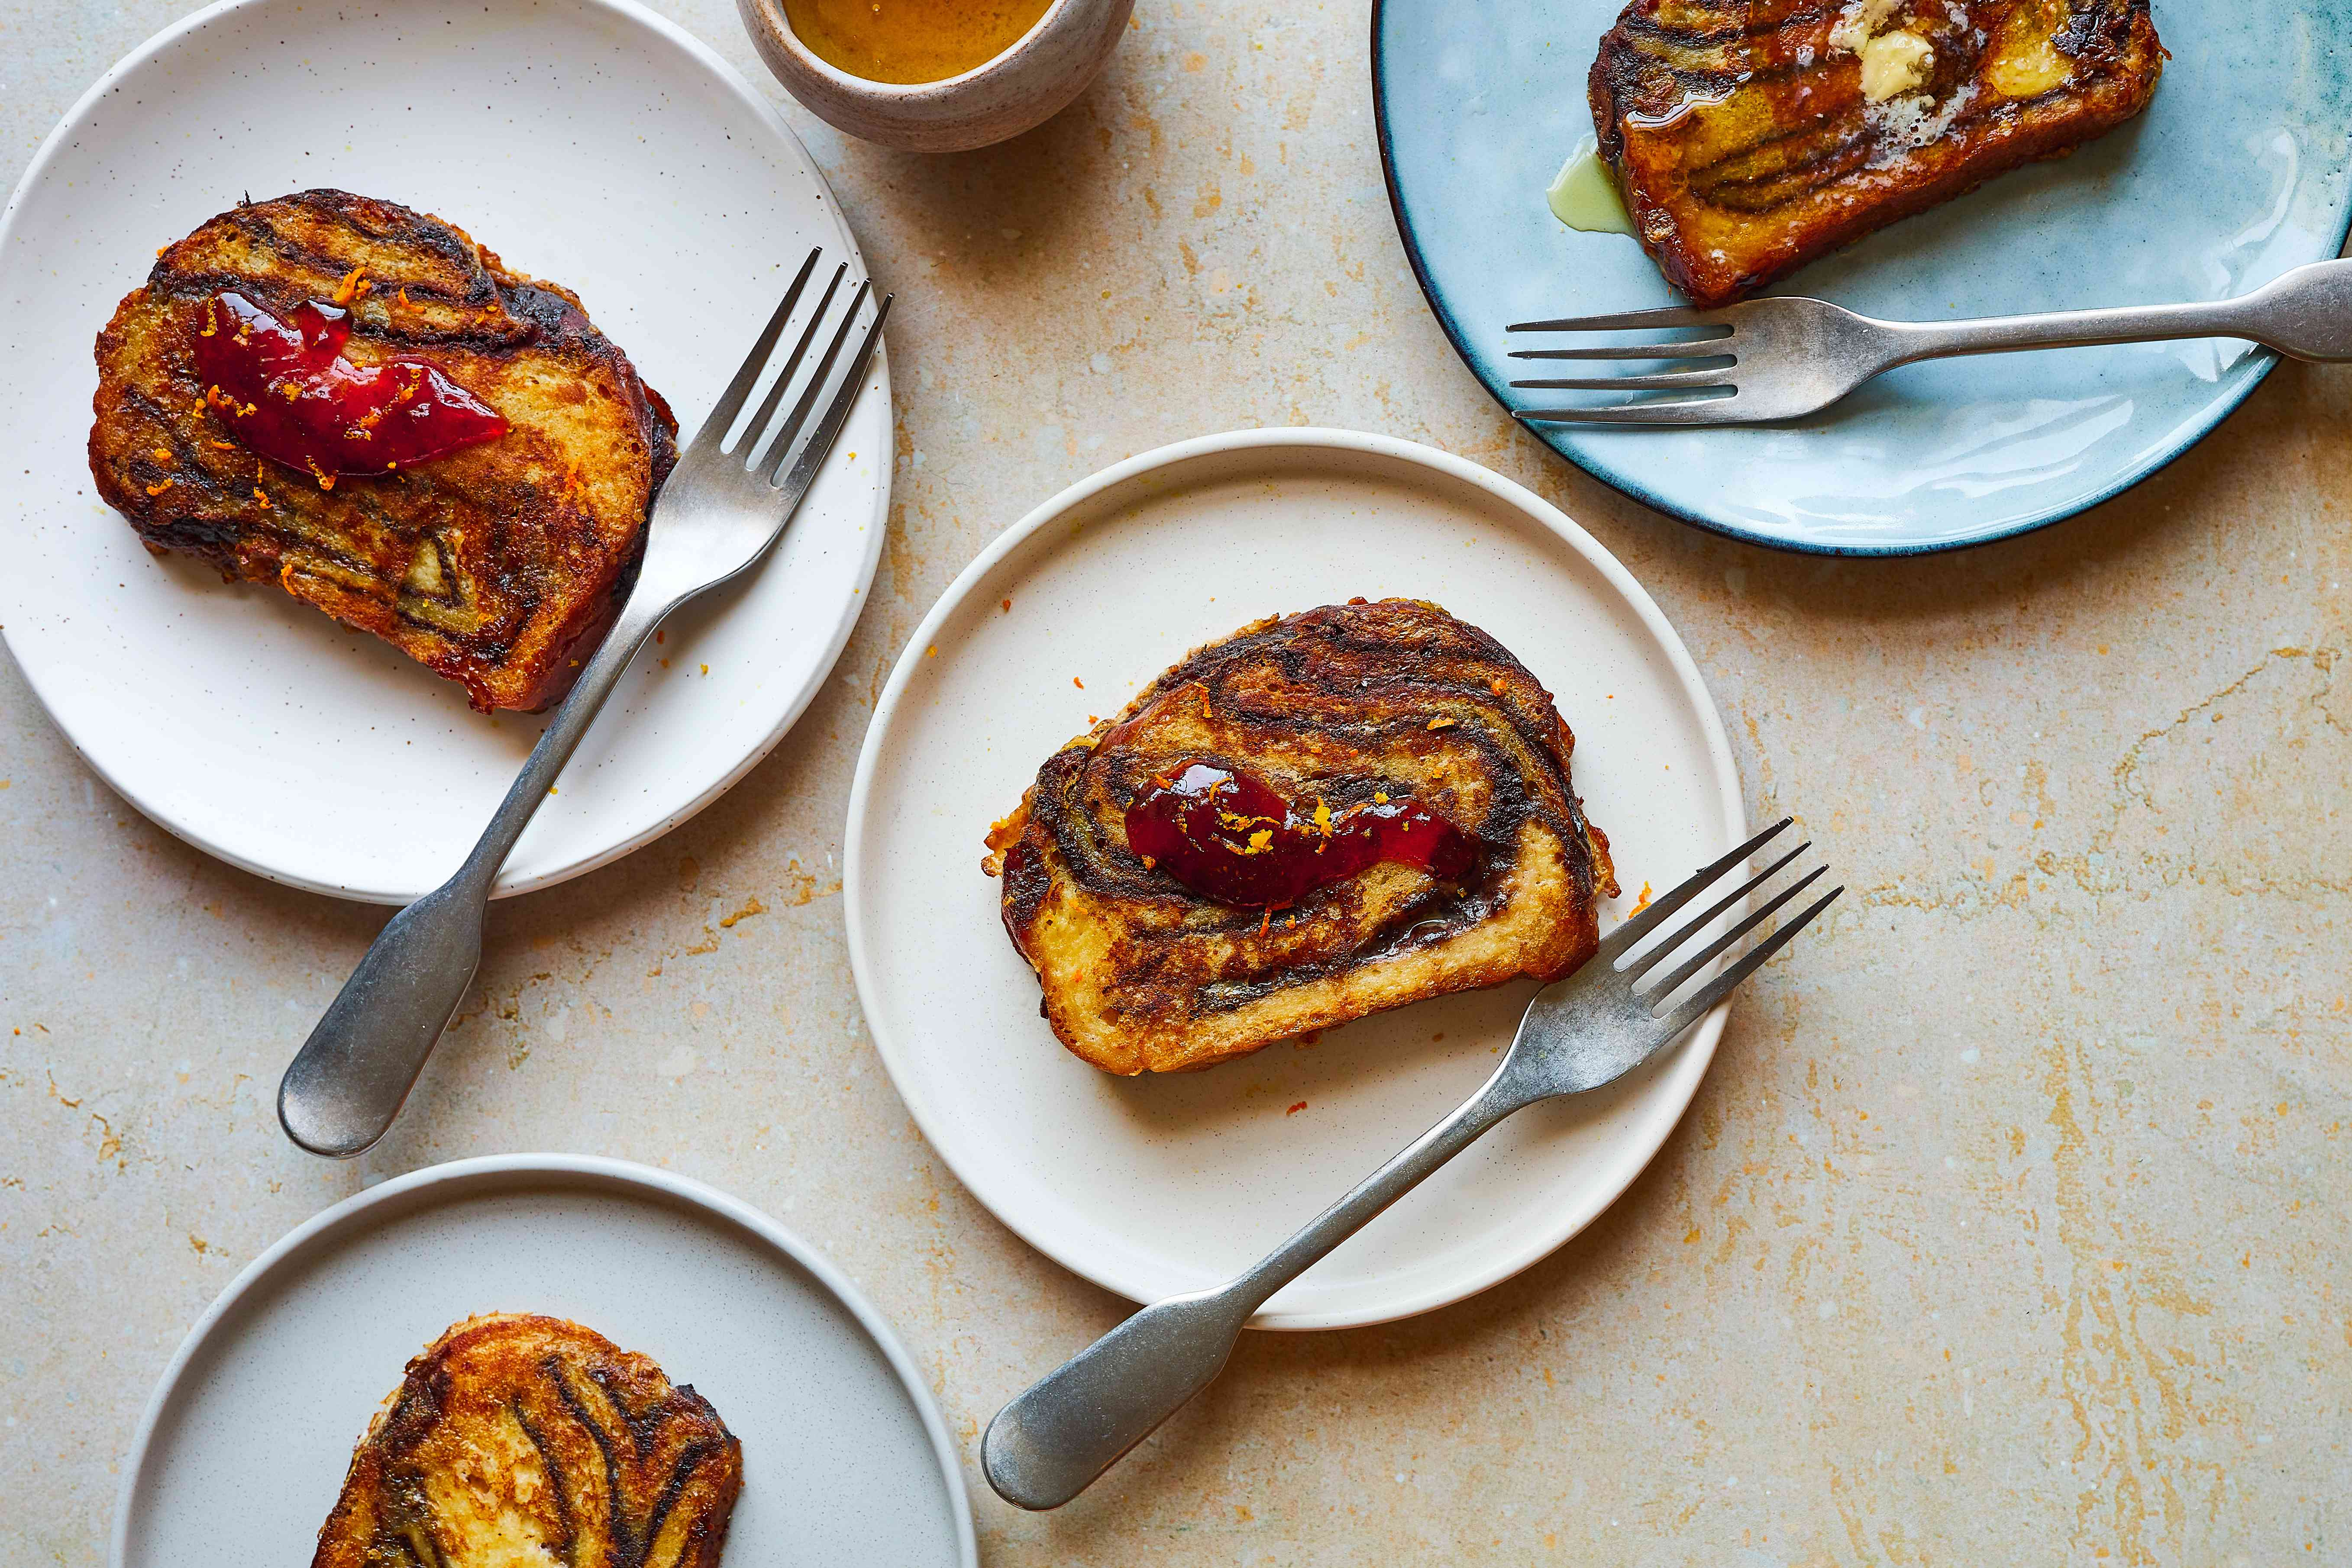 babka french toast with various toppings